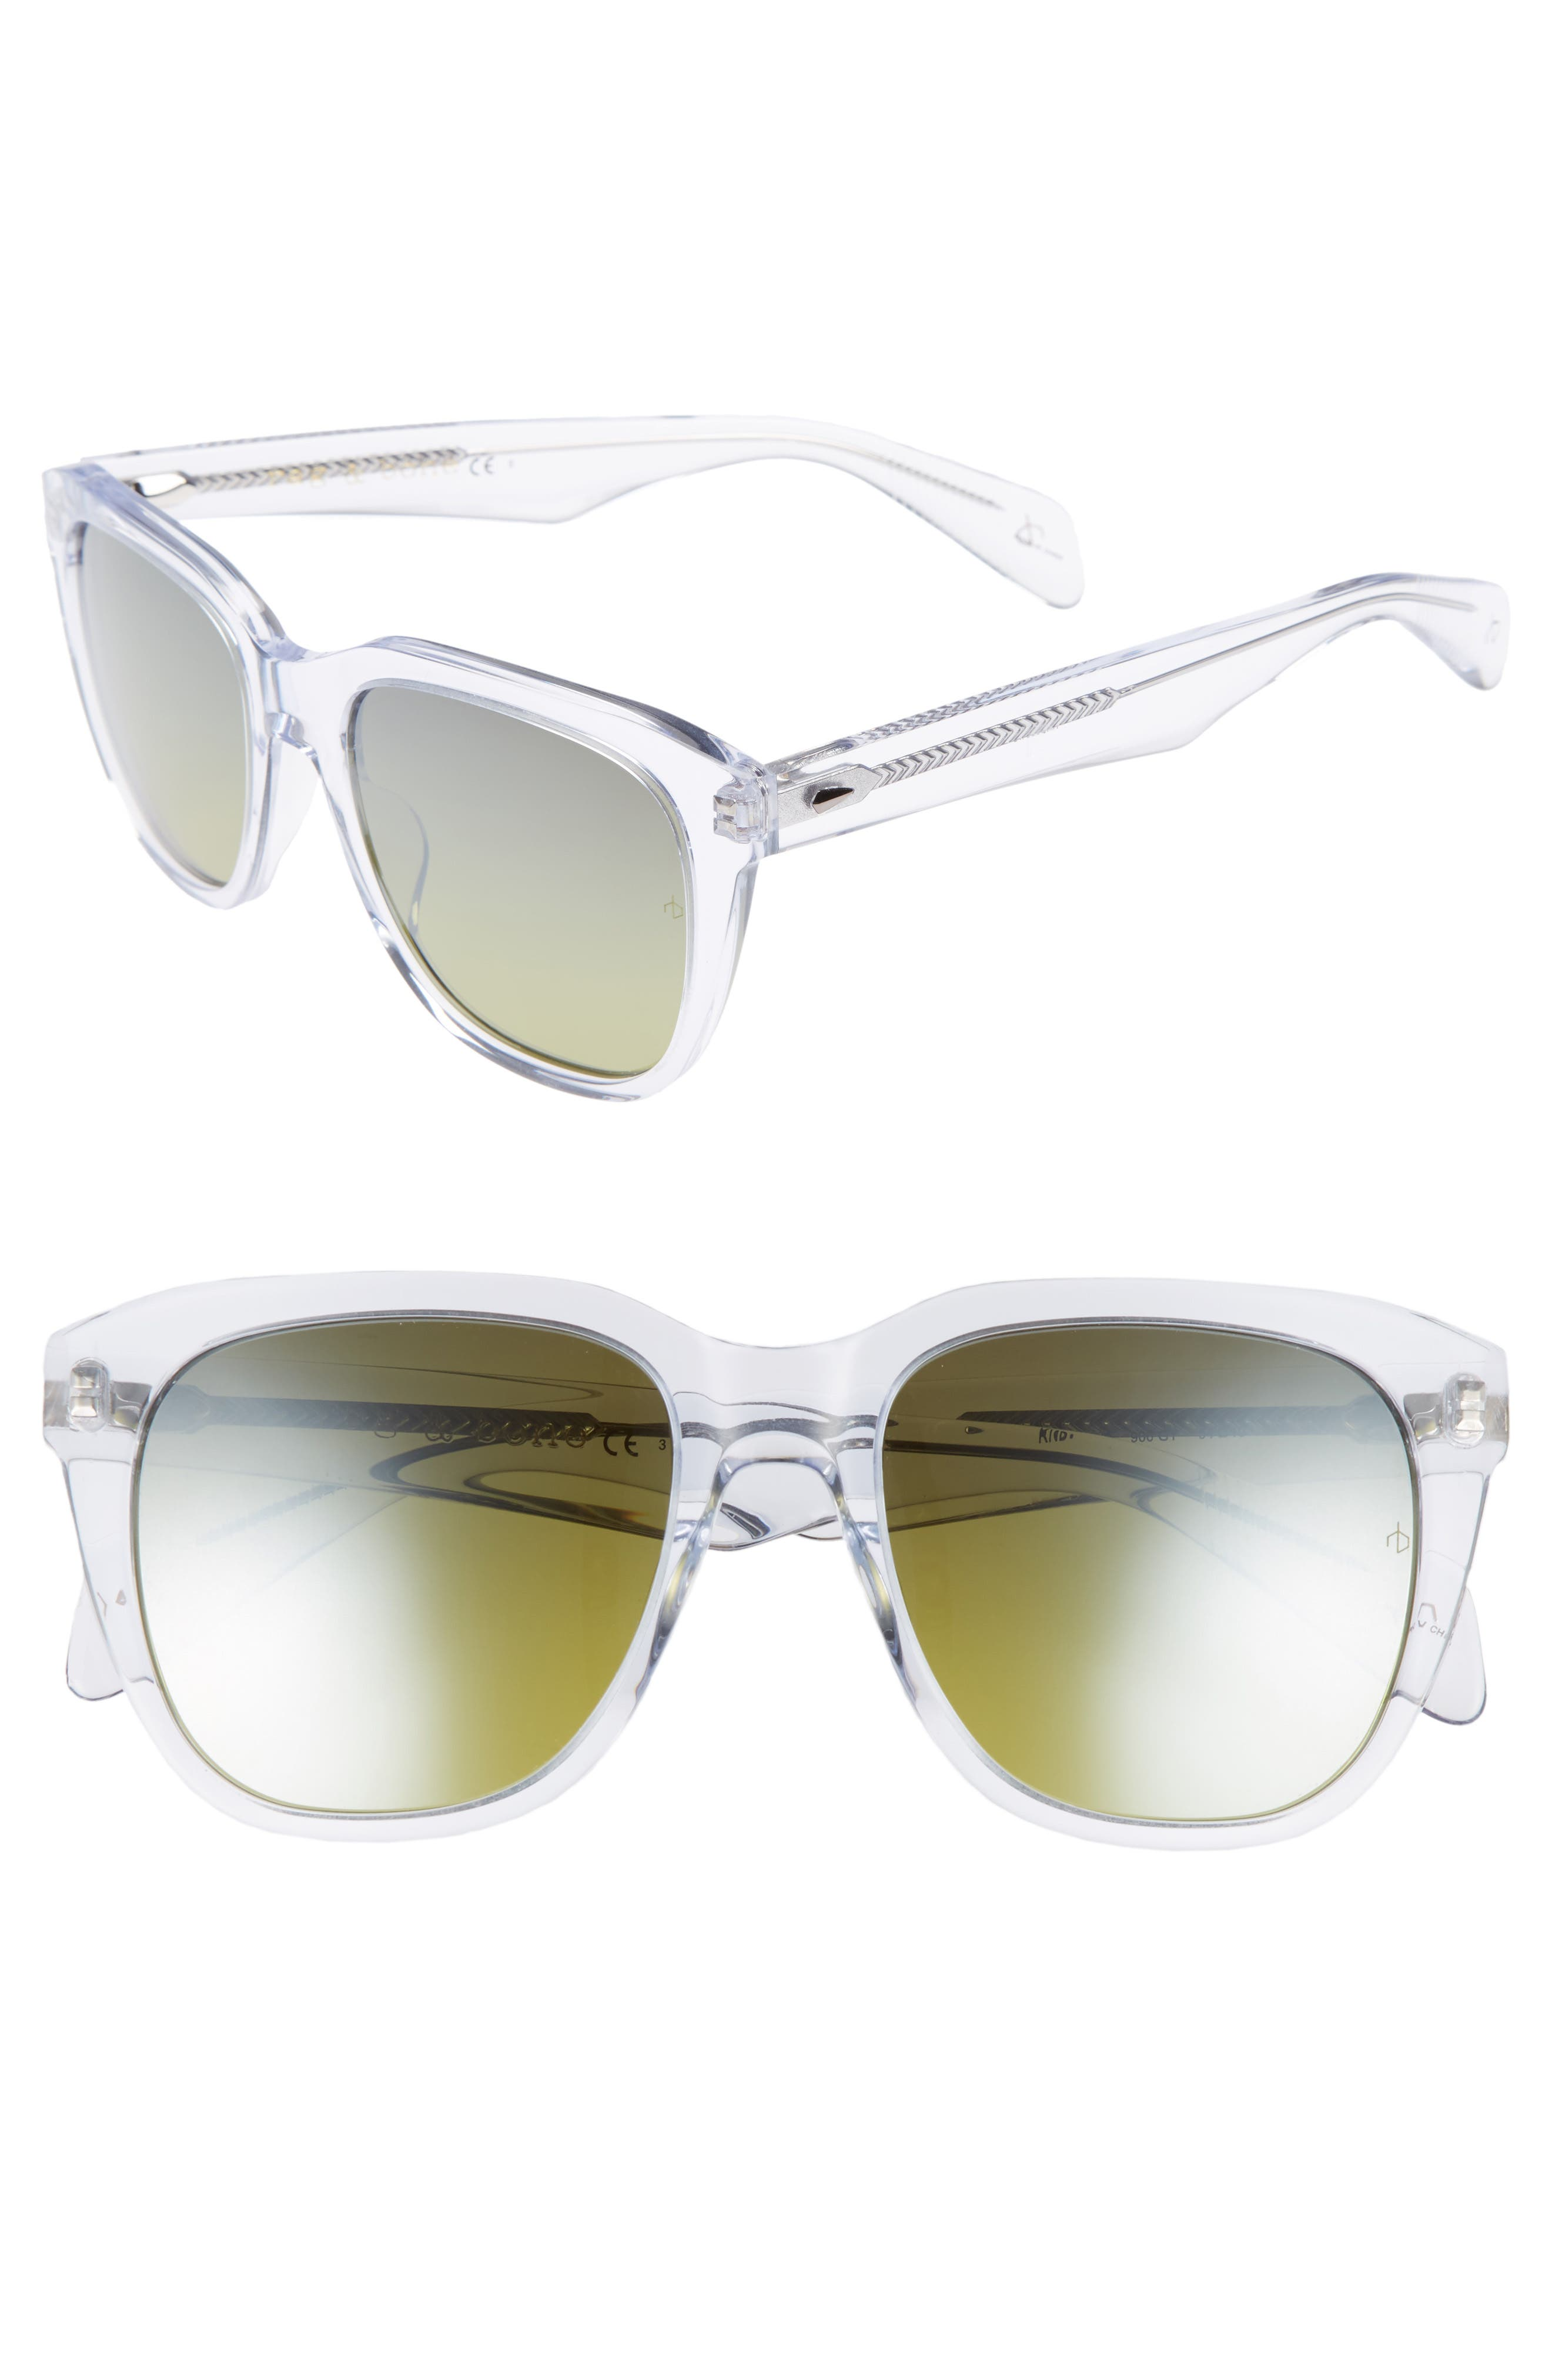 54mm Mirrored Sunglasses,                         Main,                         color, Crystal